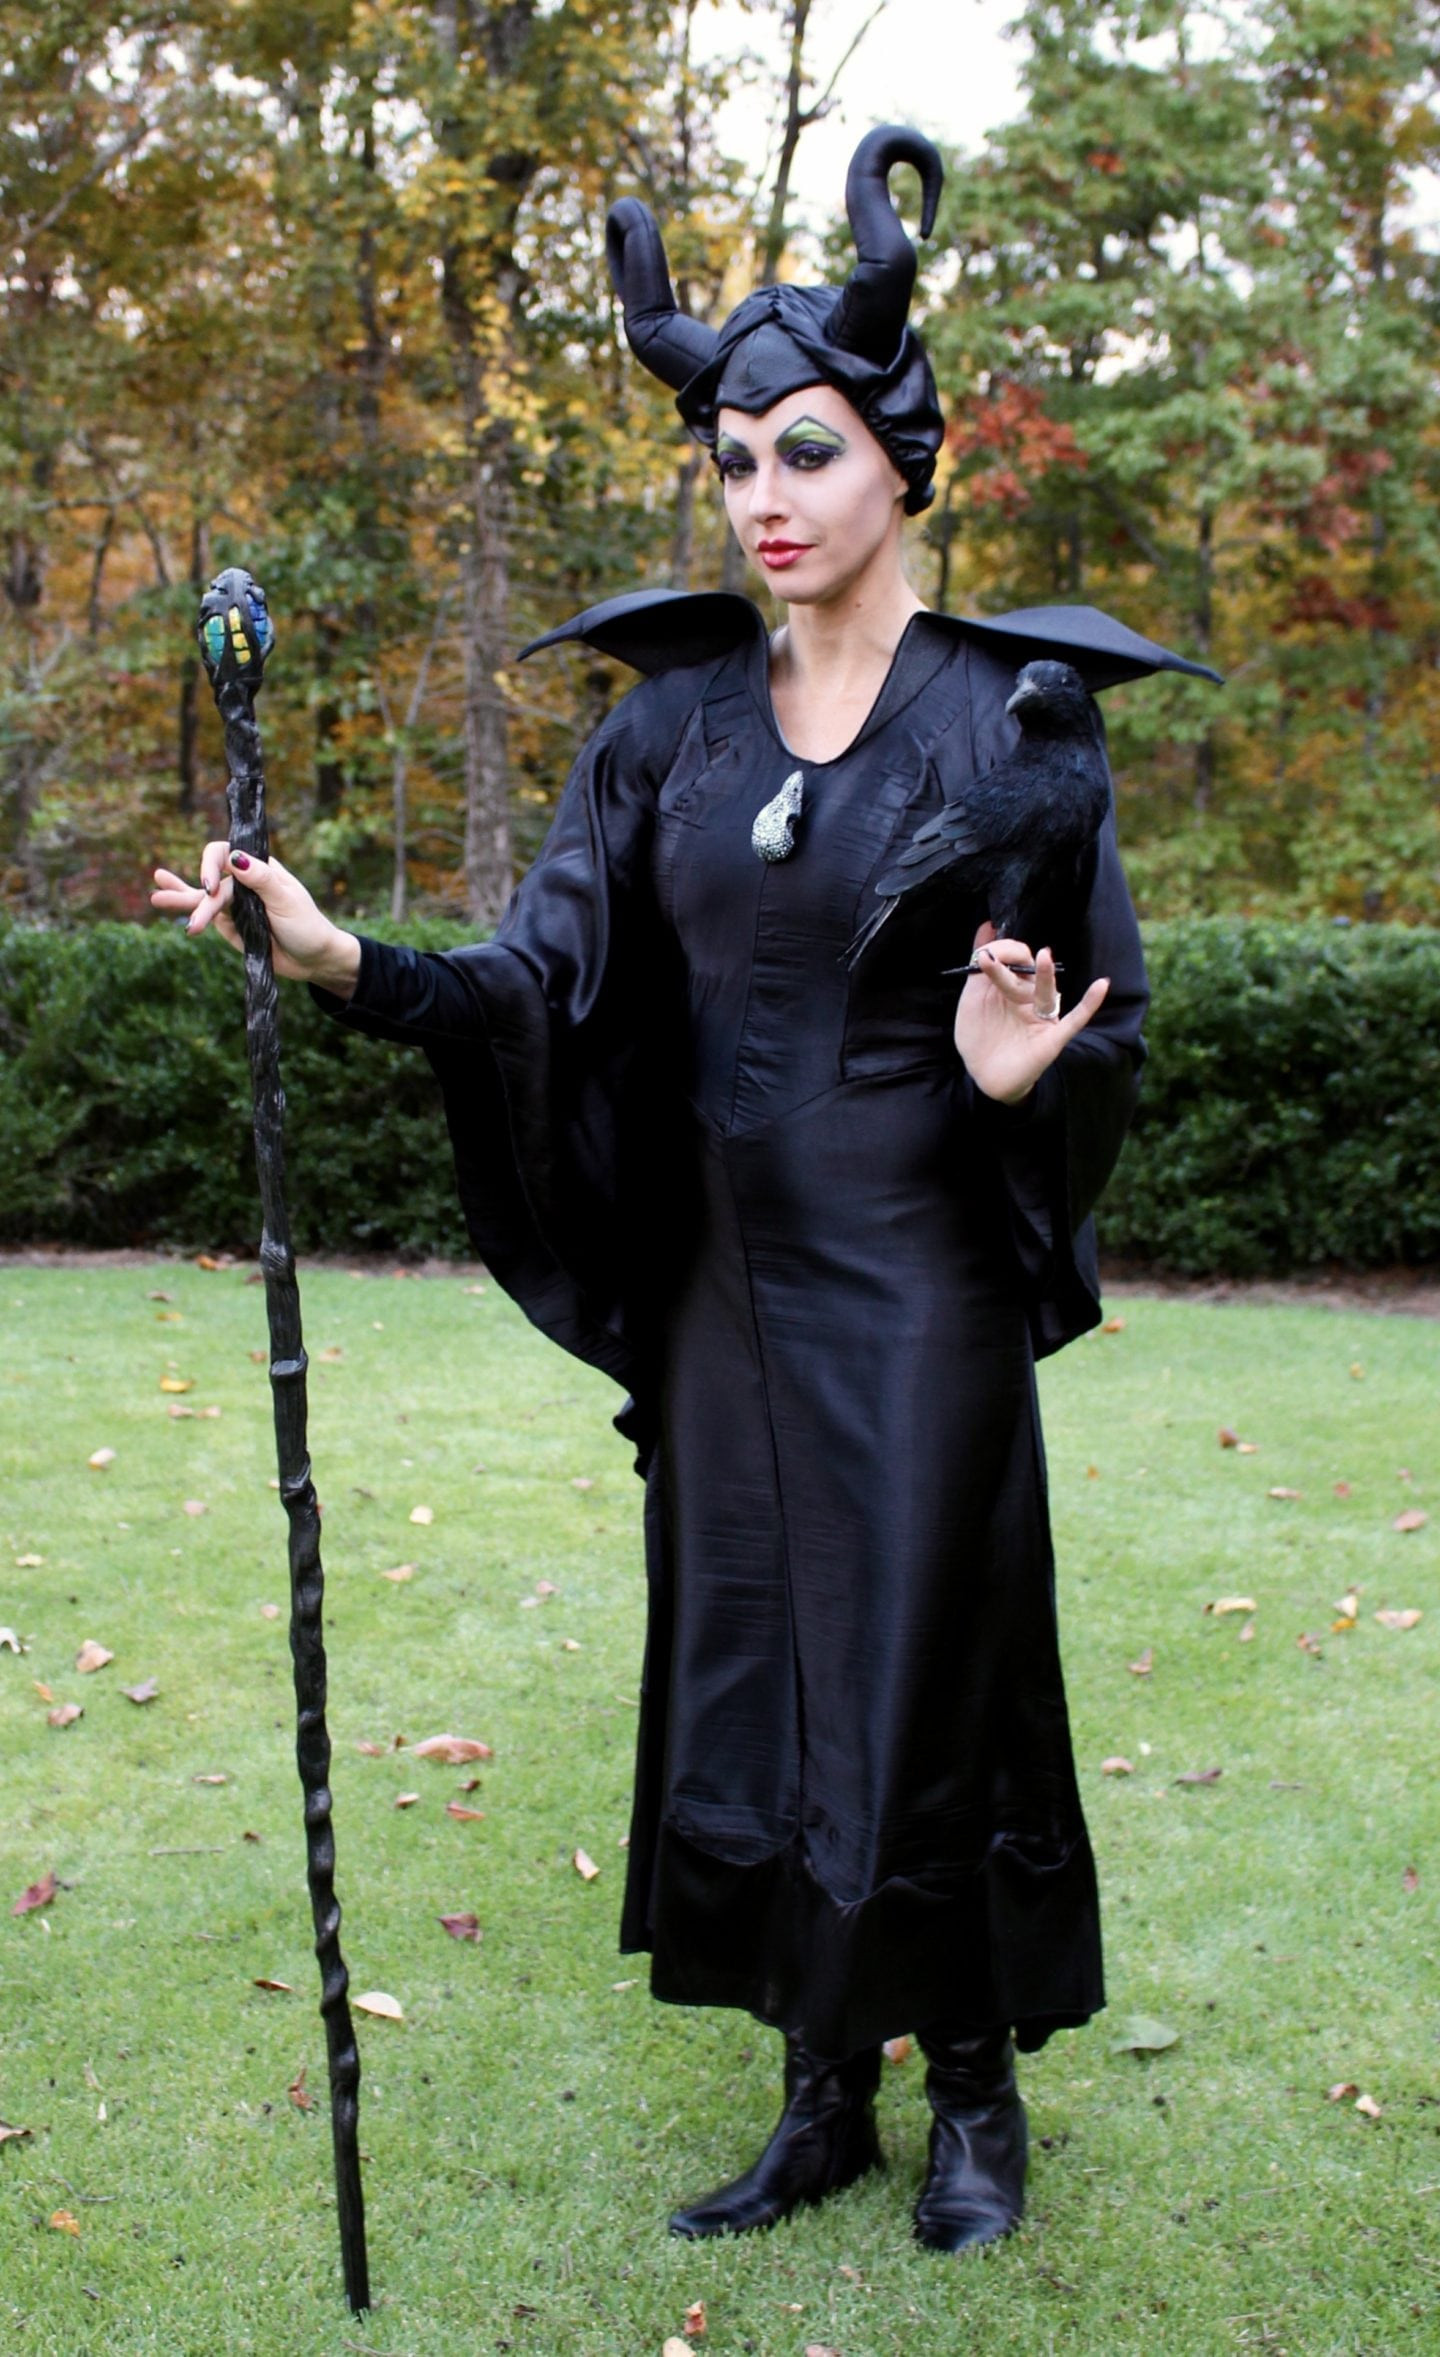 Best ideas about DIY Maleficent Costume . Save or Pin Diy Maleficent costume & Maleficent makeup tutorial Now.